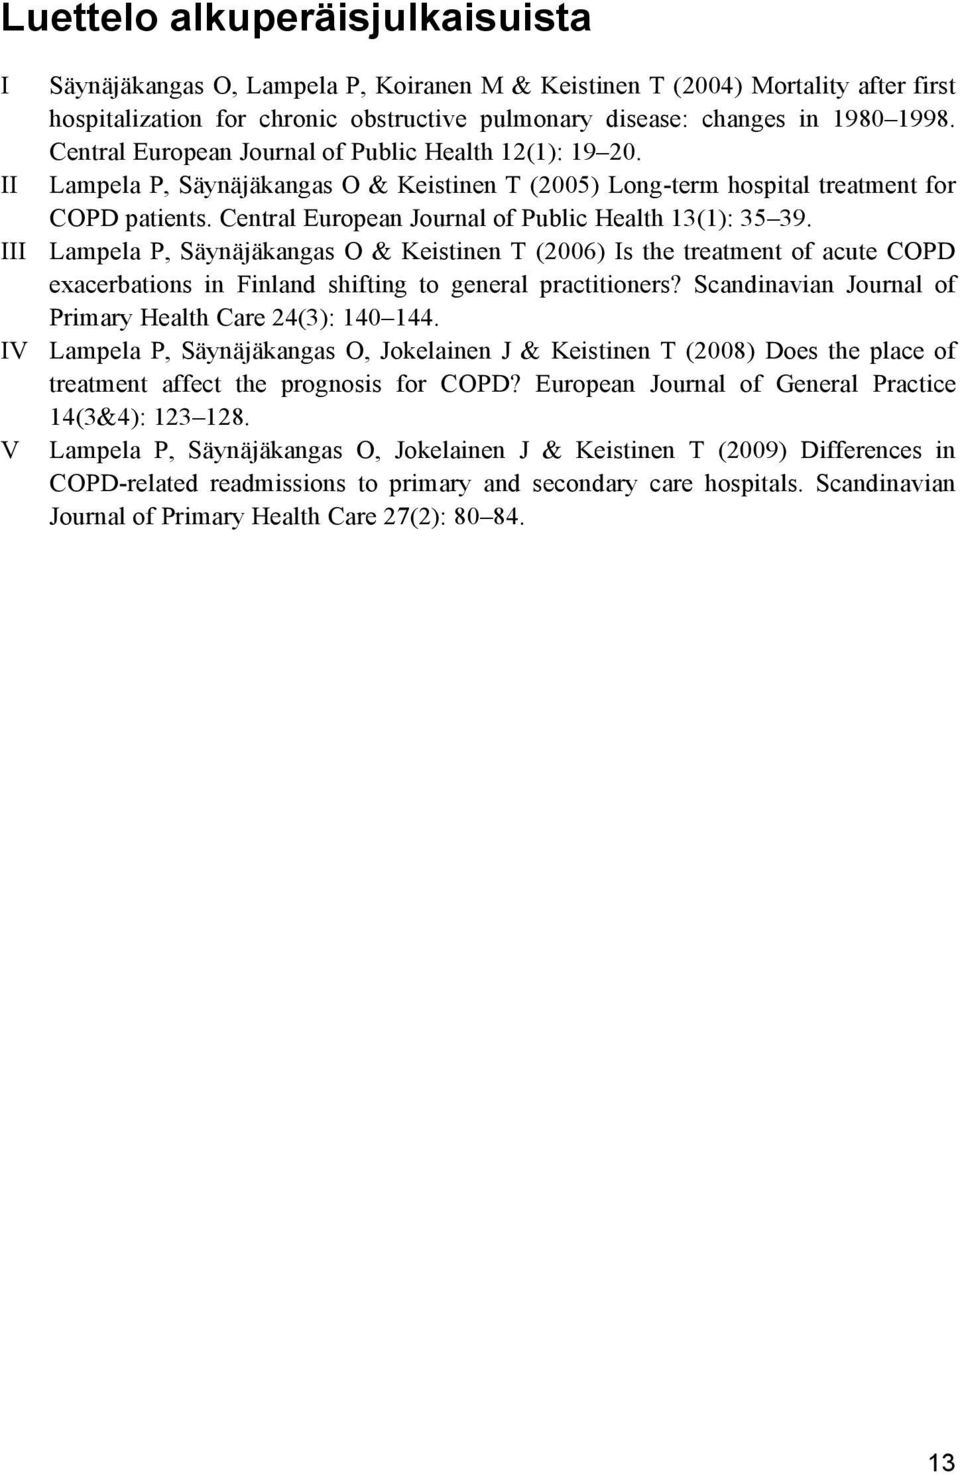 Central European Journal of Public Health 13(1): 35 39. III Lampela P, Säynäjäkangas O & Keistinen T (2006) Is the treatment of acute COPD exacerbations in Finland shifting to general practitioners?